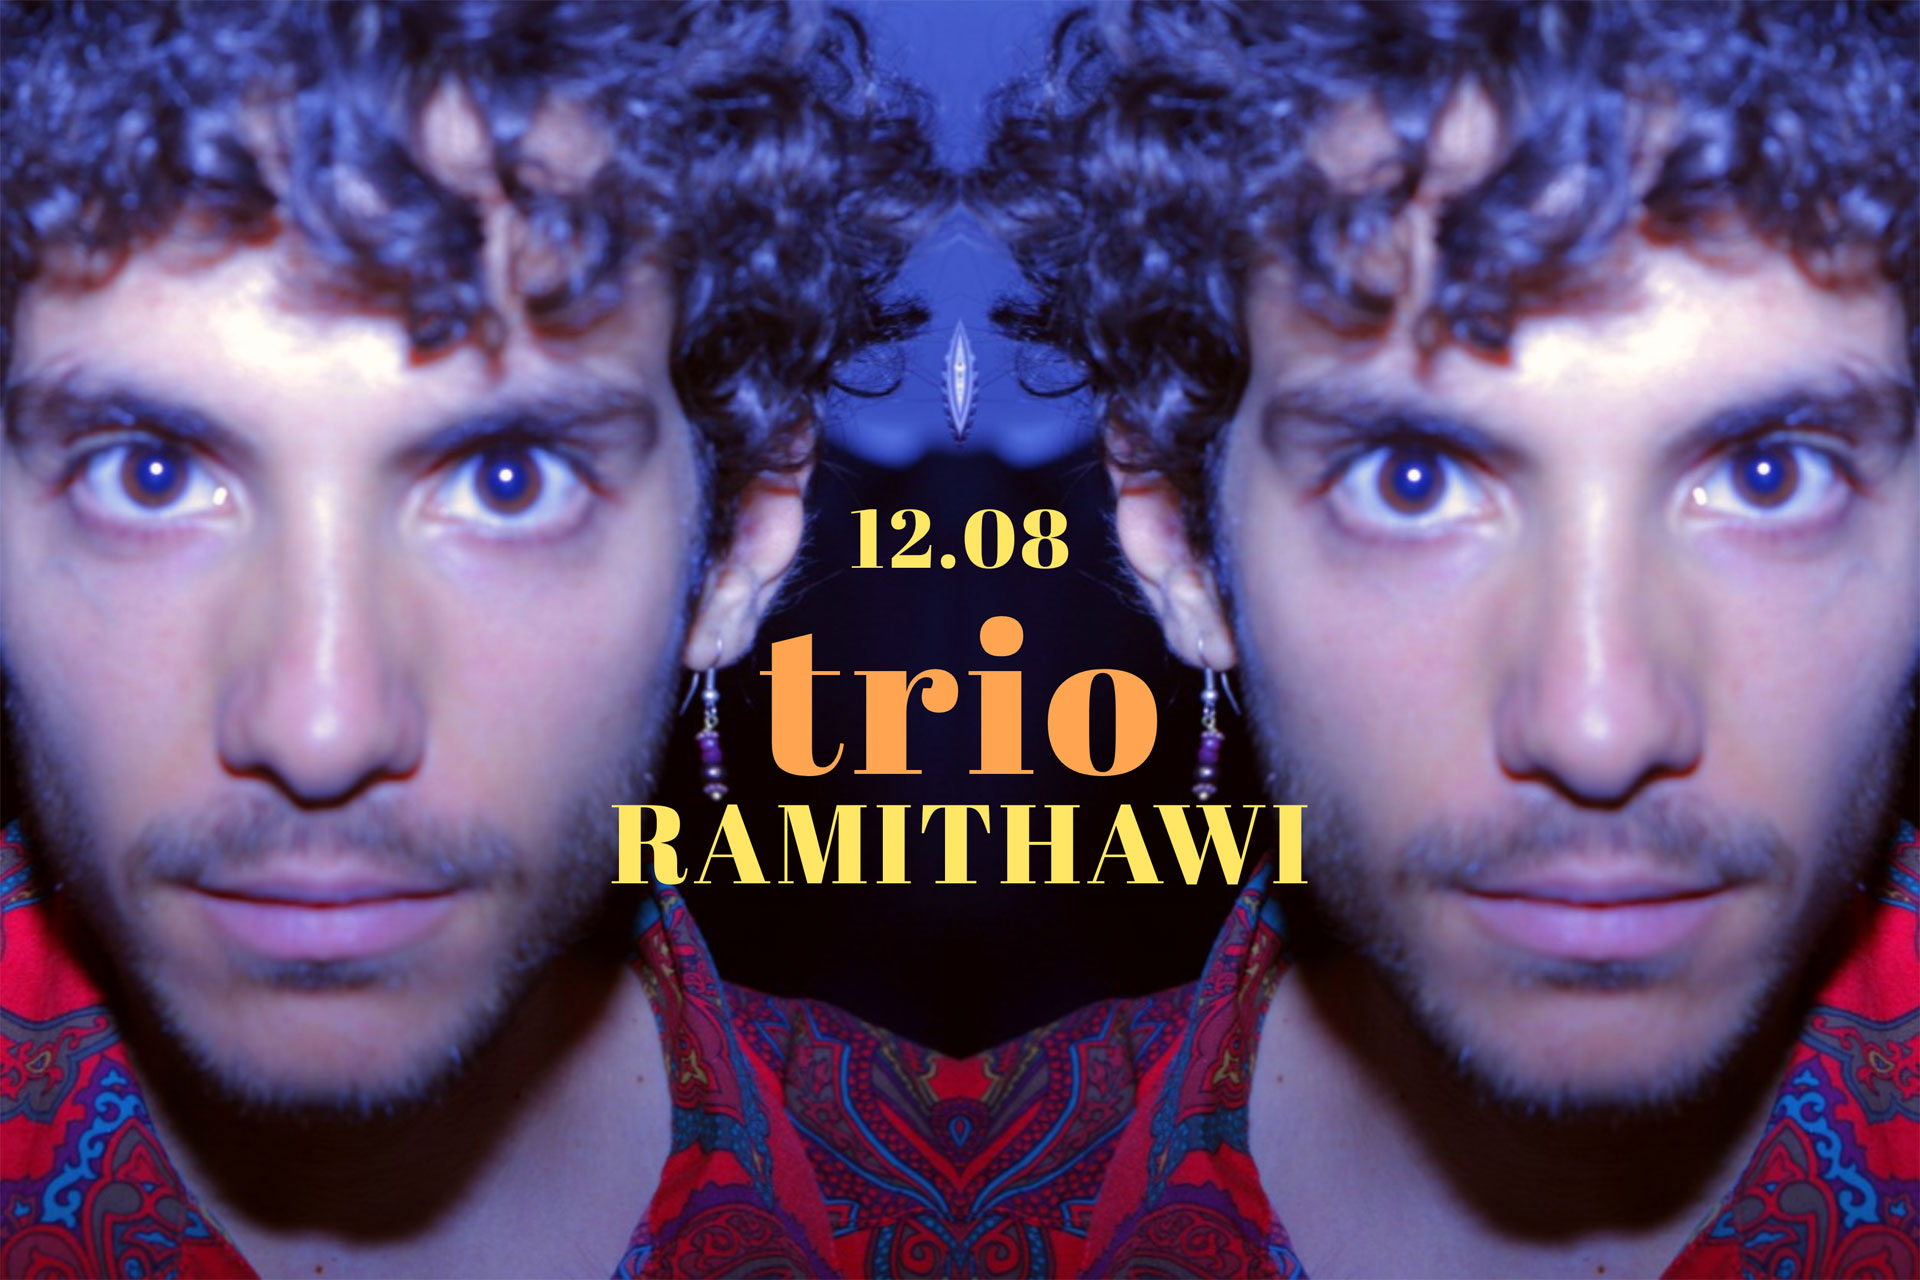 Link to event Ramithawi Trio